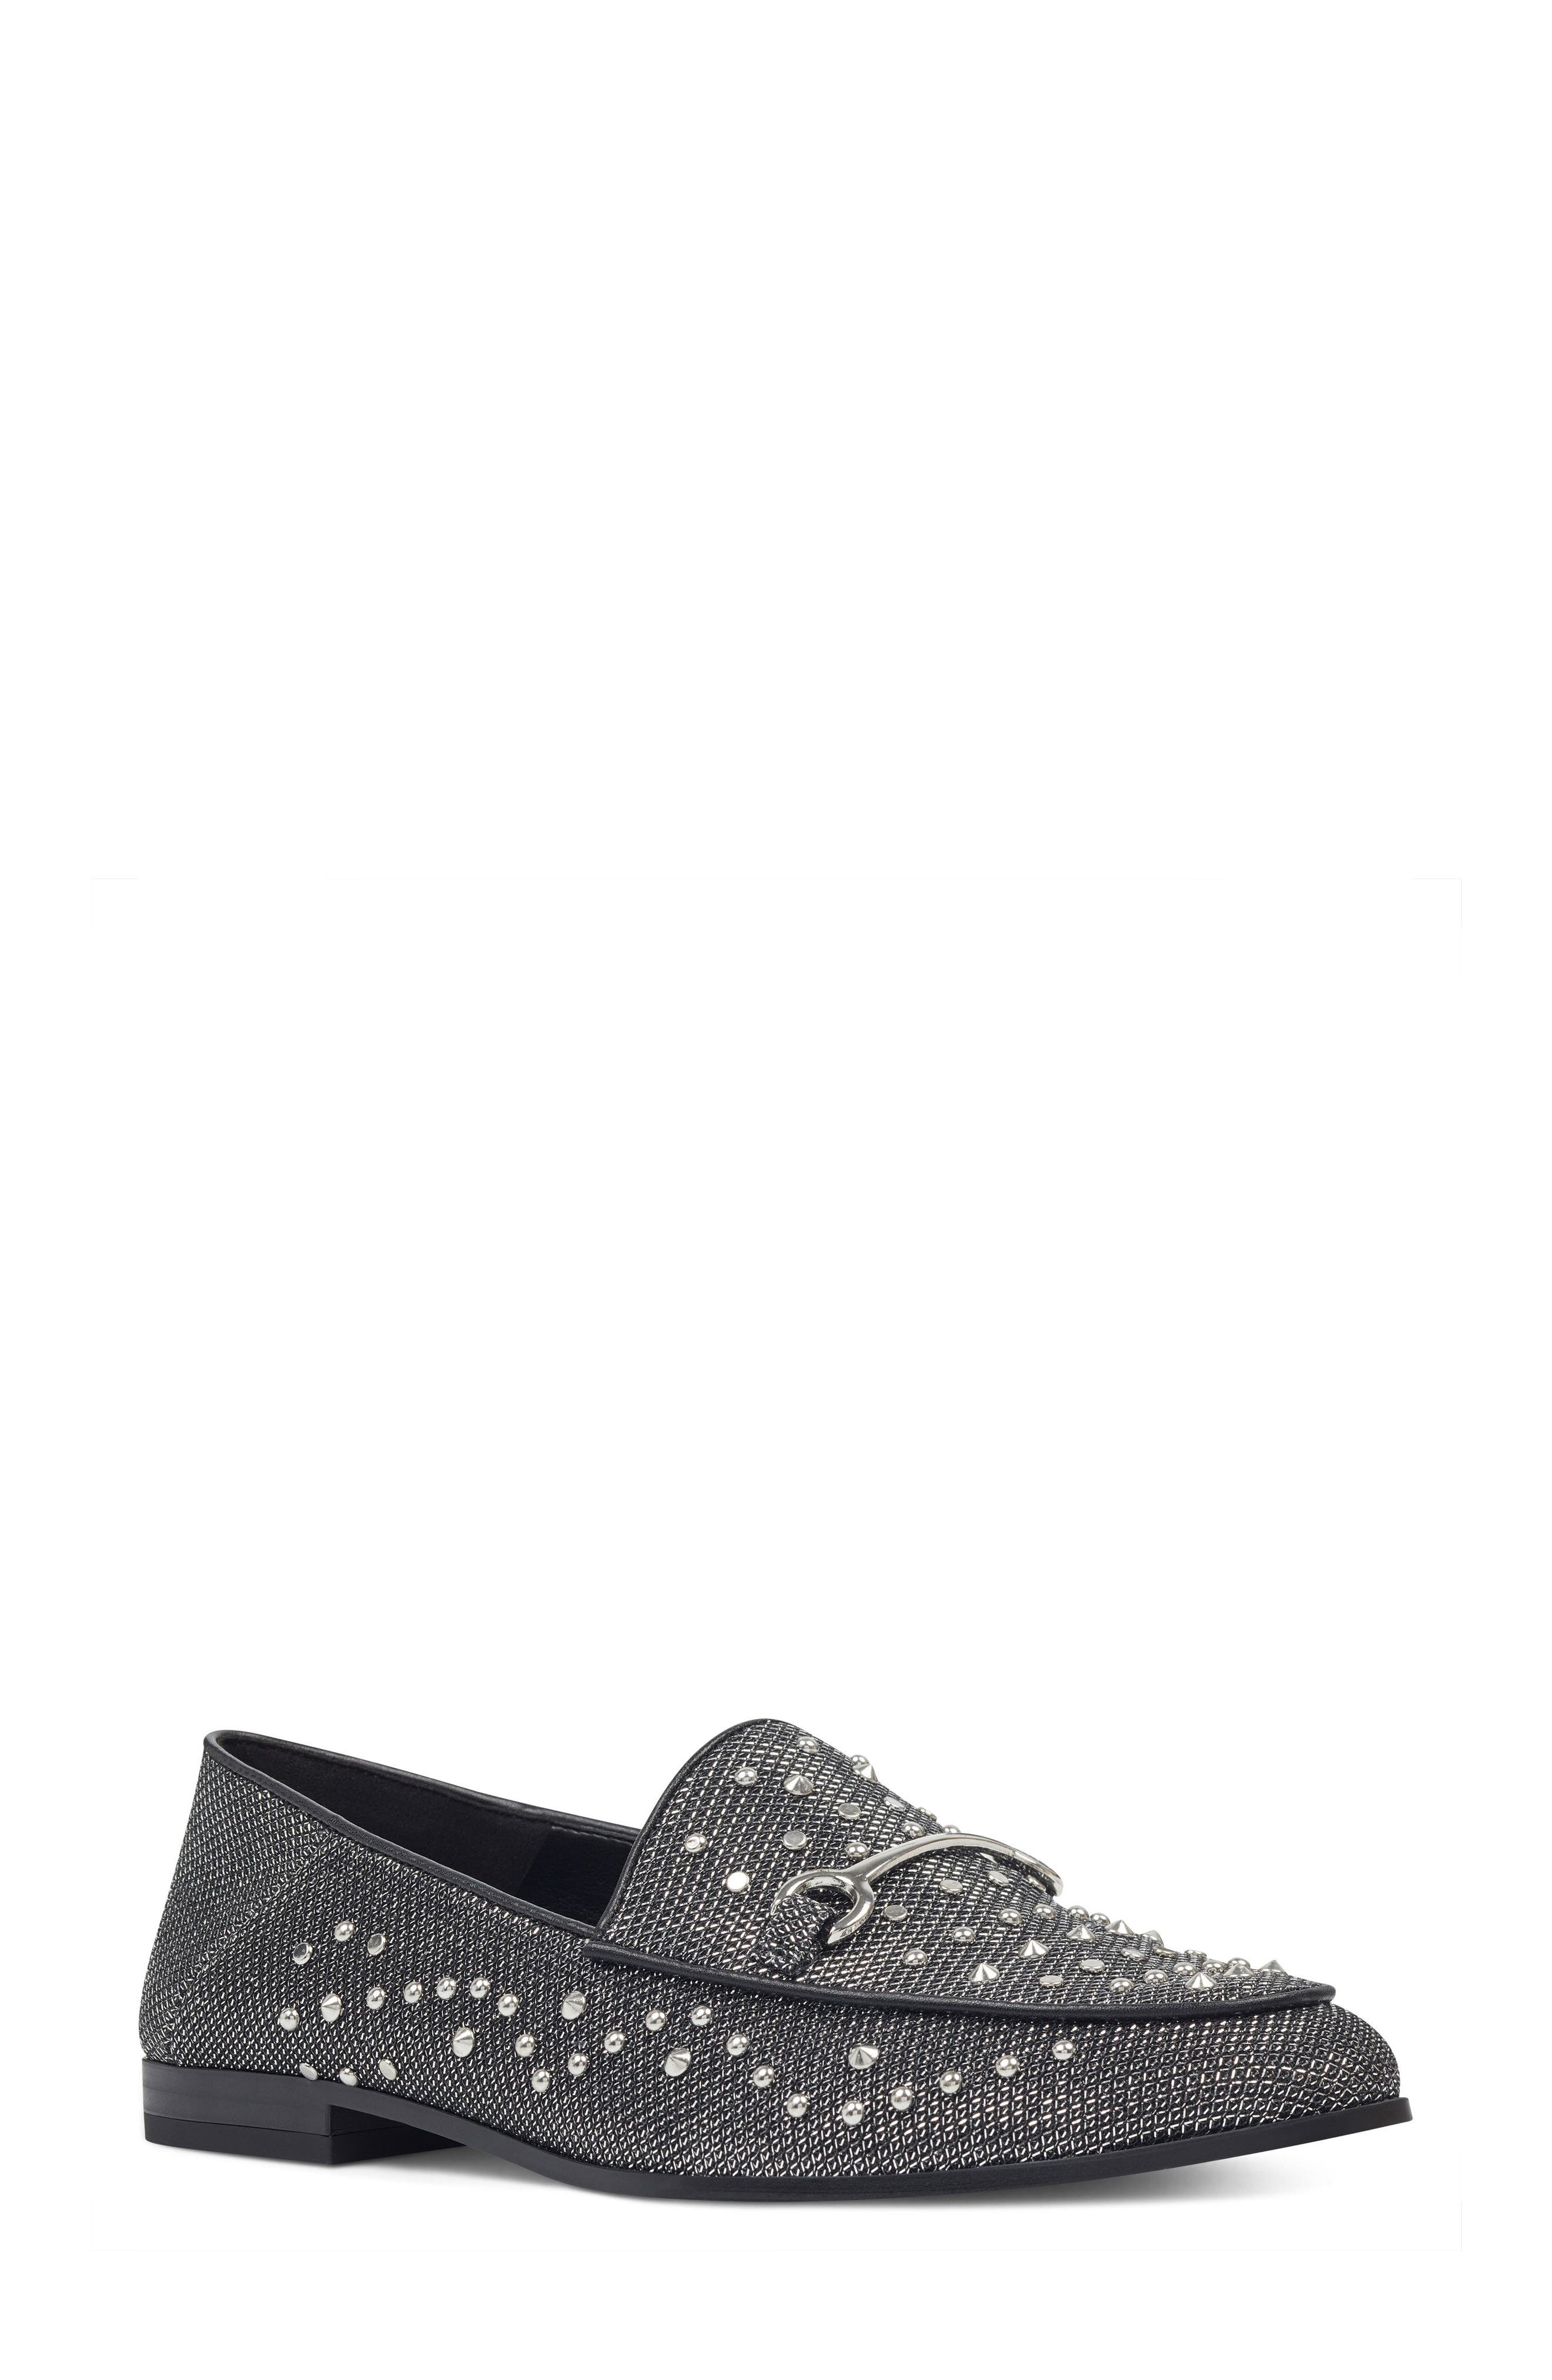 Westoy Studded Loafer,                             Main thumbnail 1, color,                             001